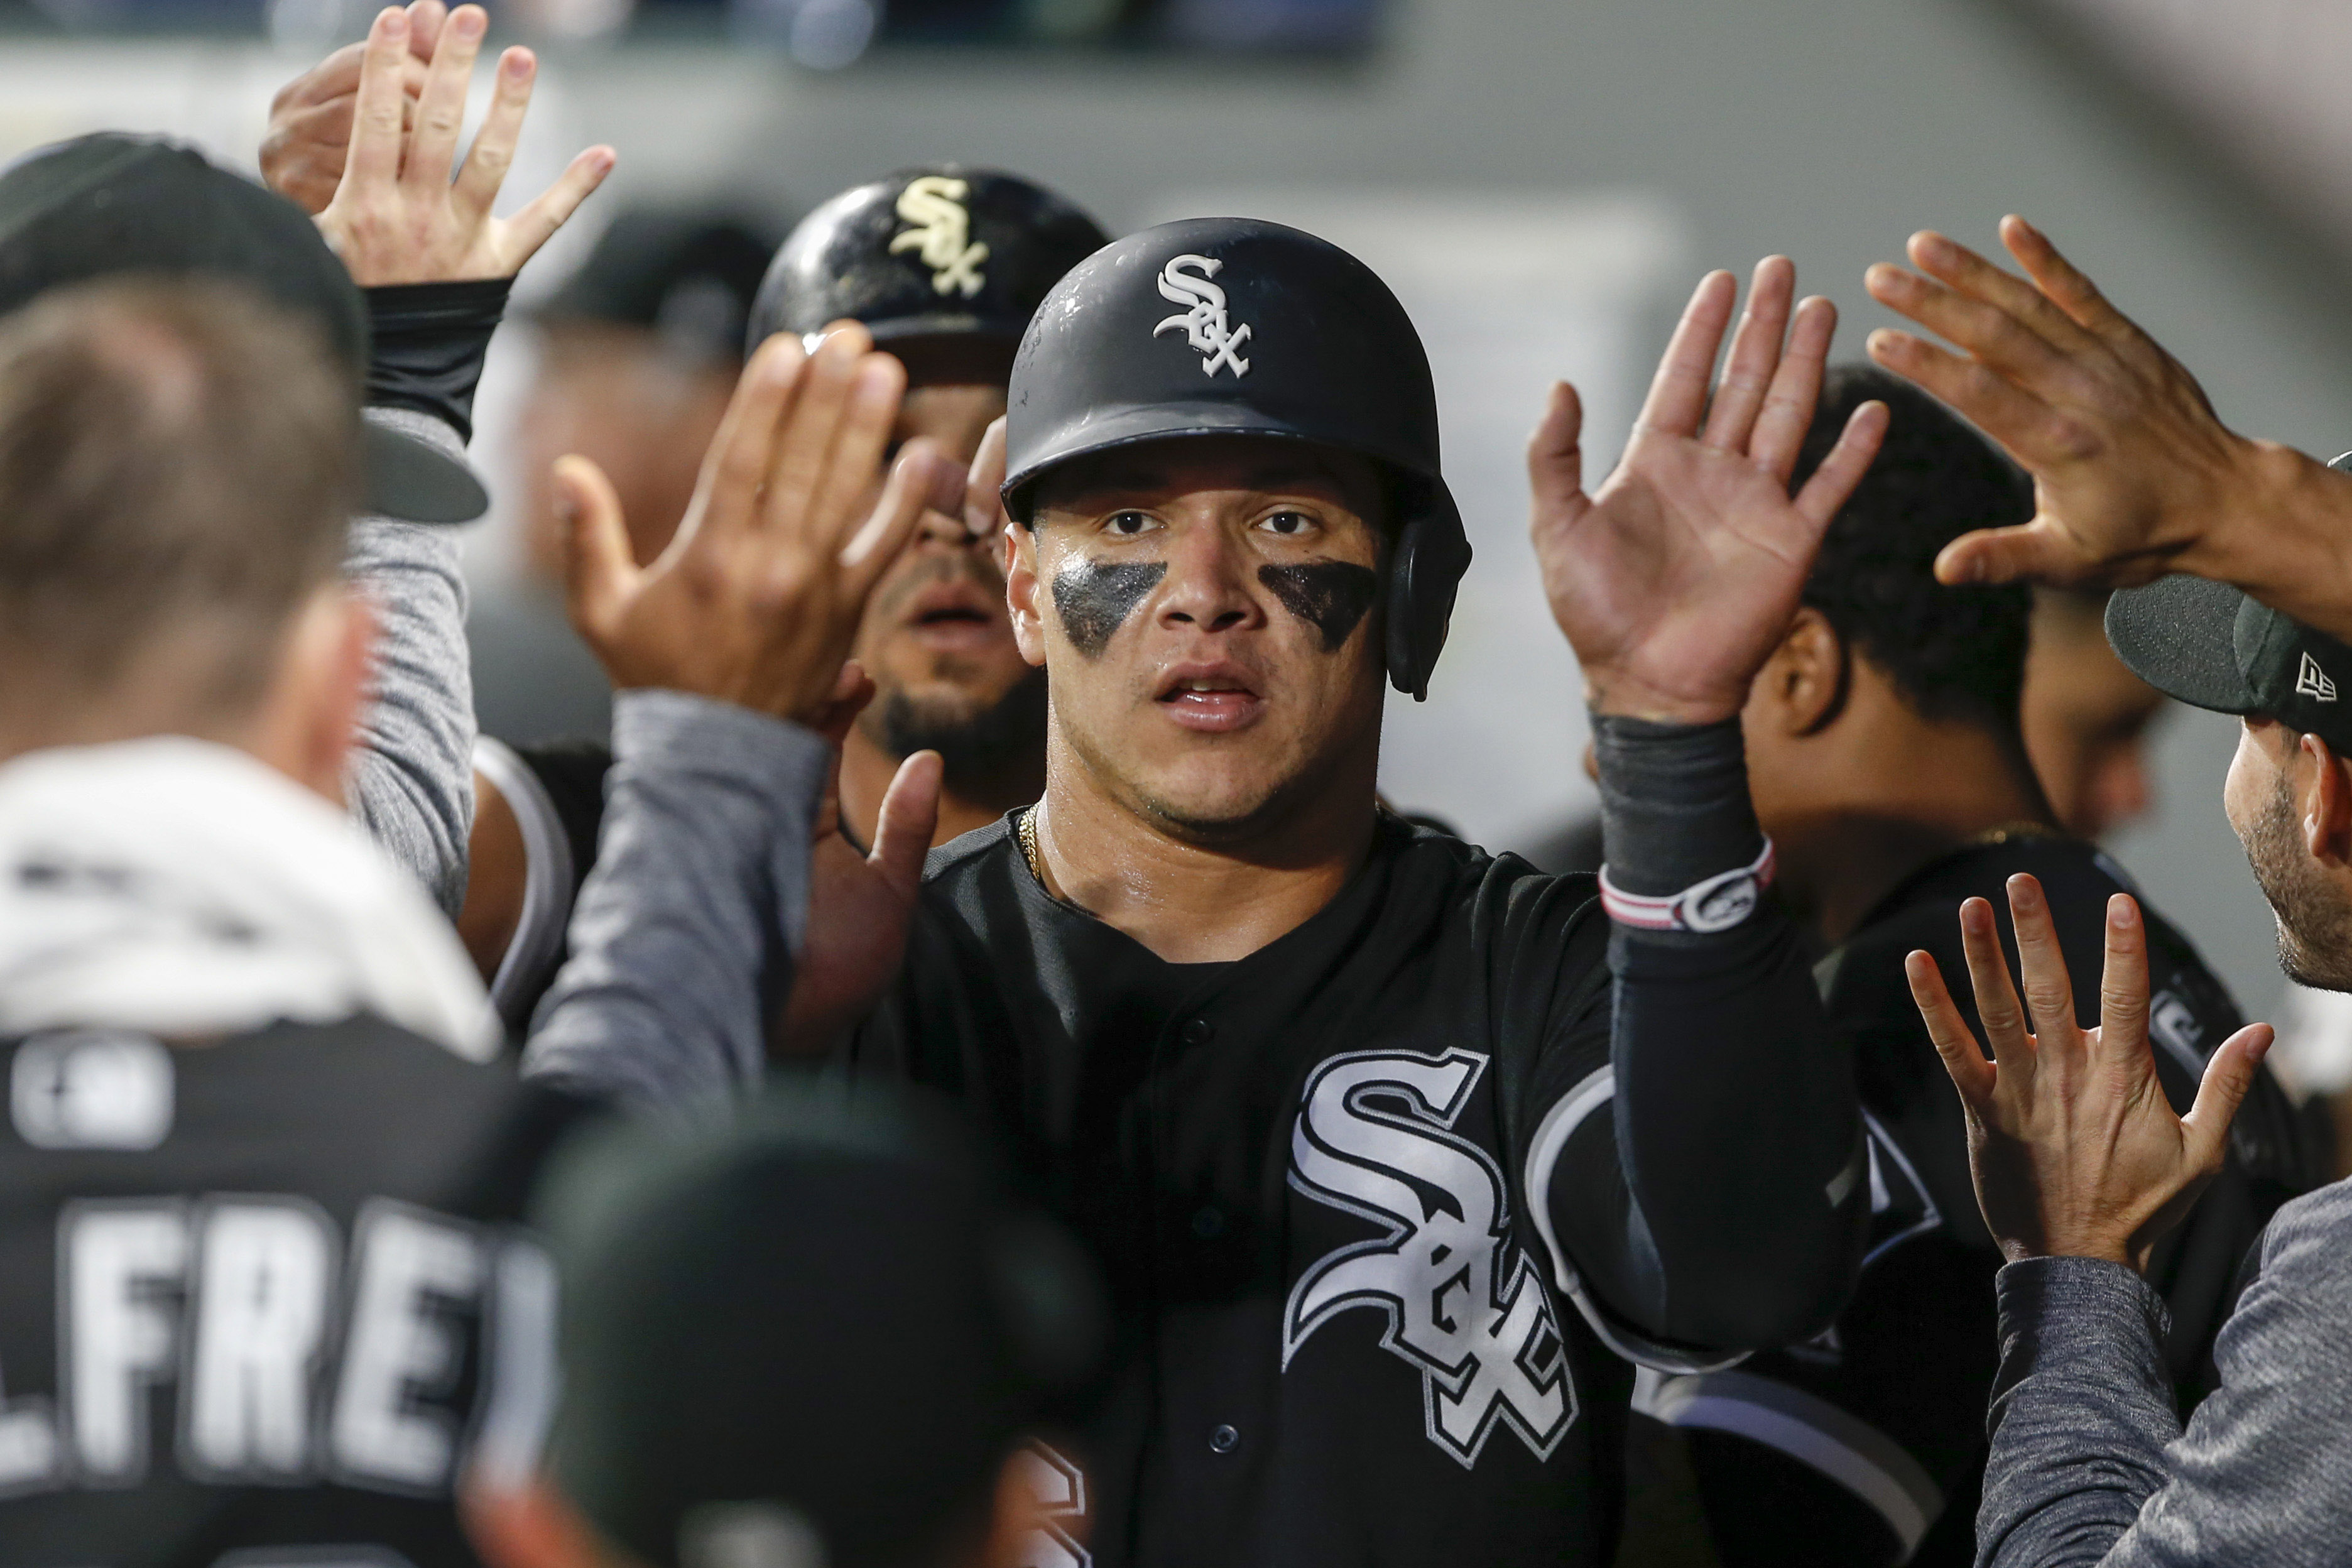 10067854-mlb-chicago-white-sox-at-seattle-mariners